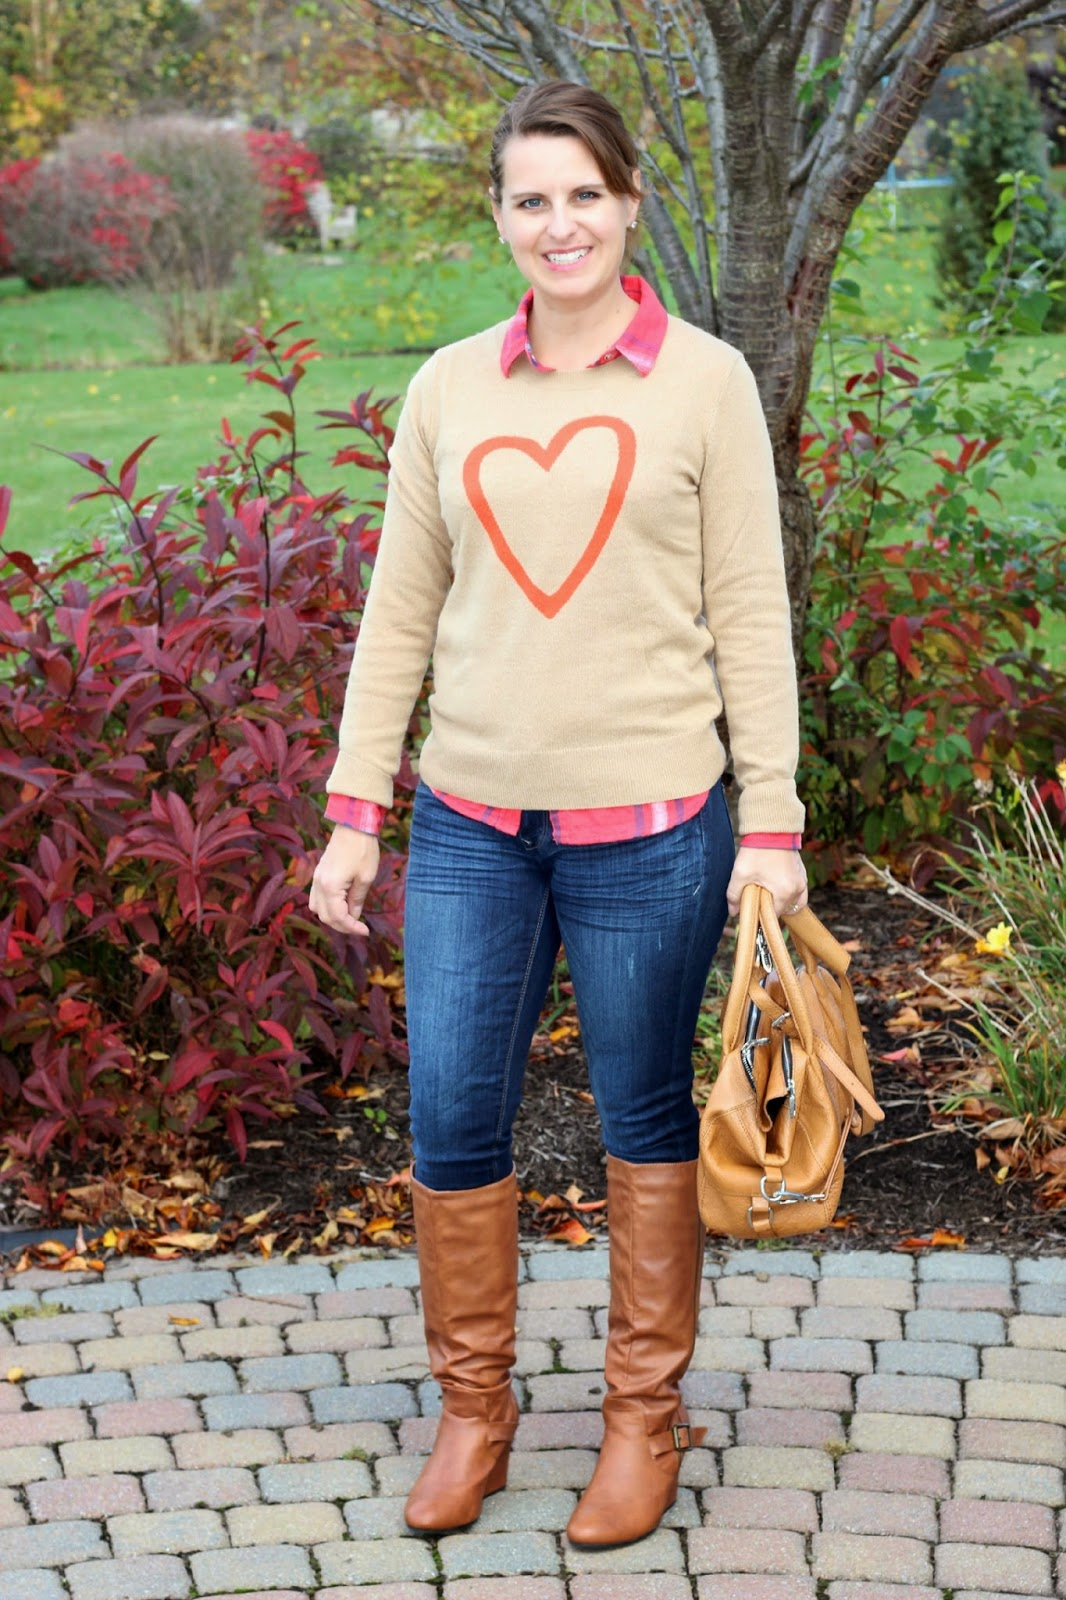 Fall uniform, fall look, sweater layered with plaid shirt, cognac boots and purse